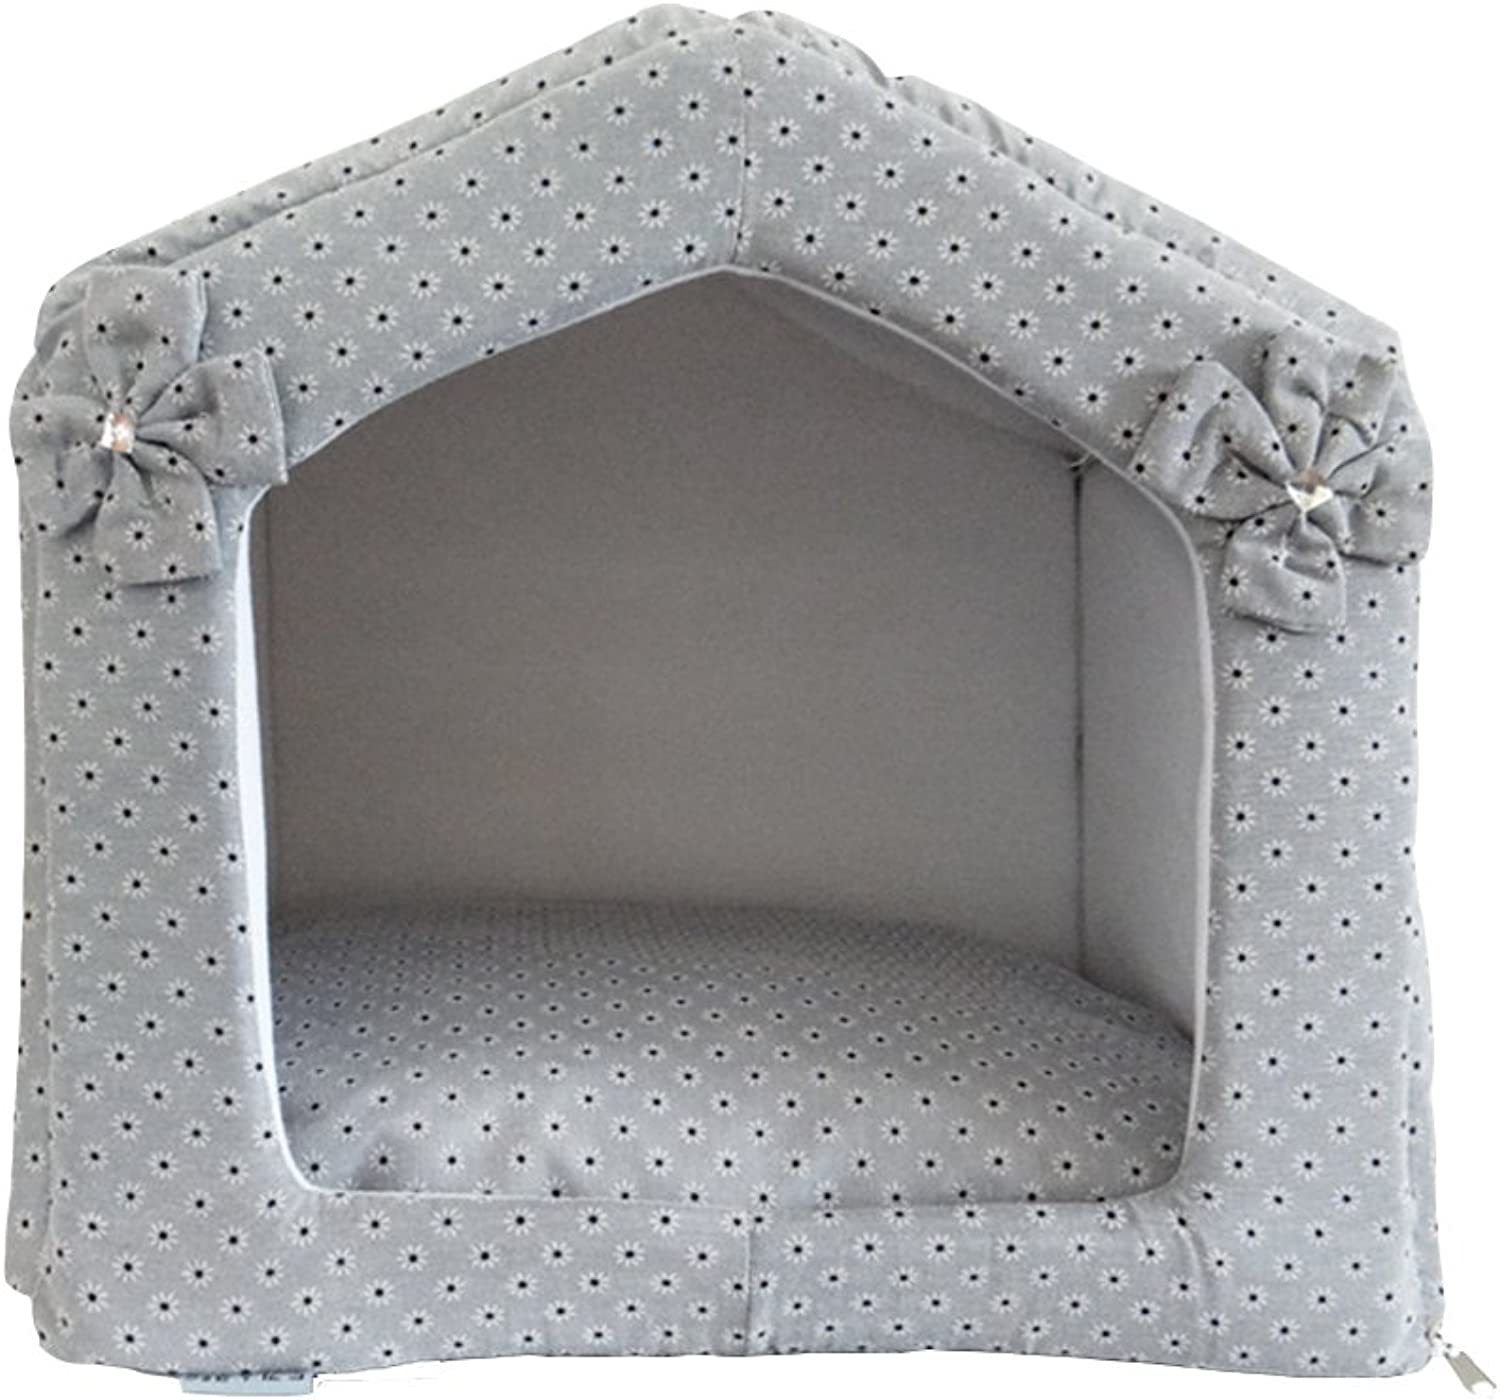 Aqi7 Removable Dog House, Small Pet Cat Kennel, Pet House